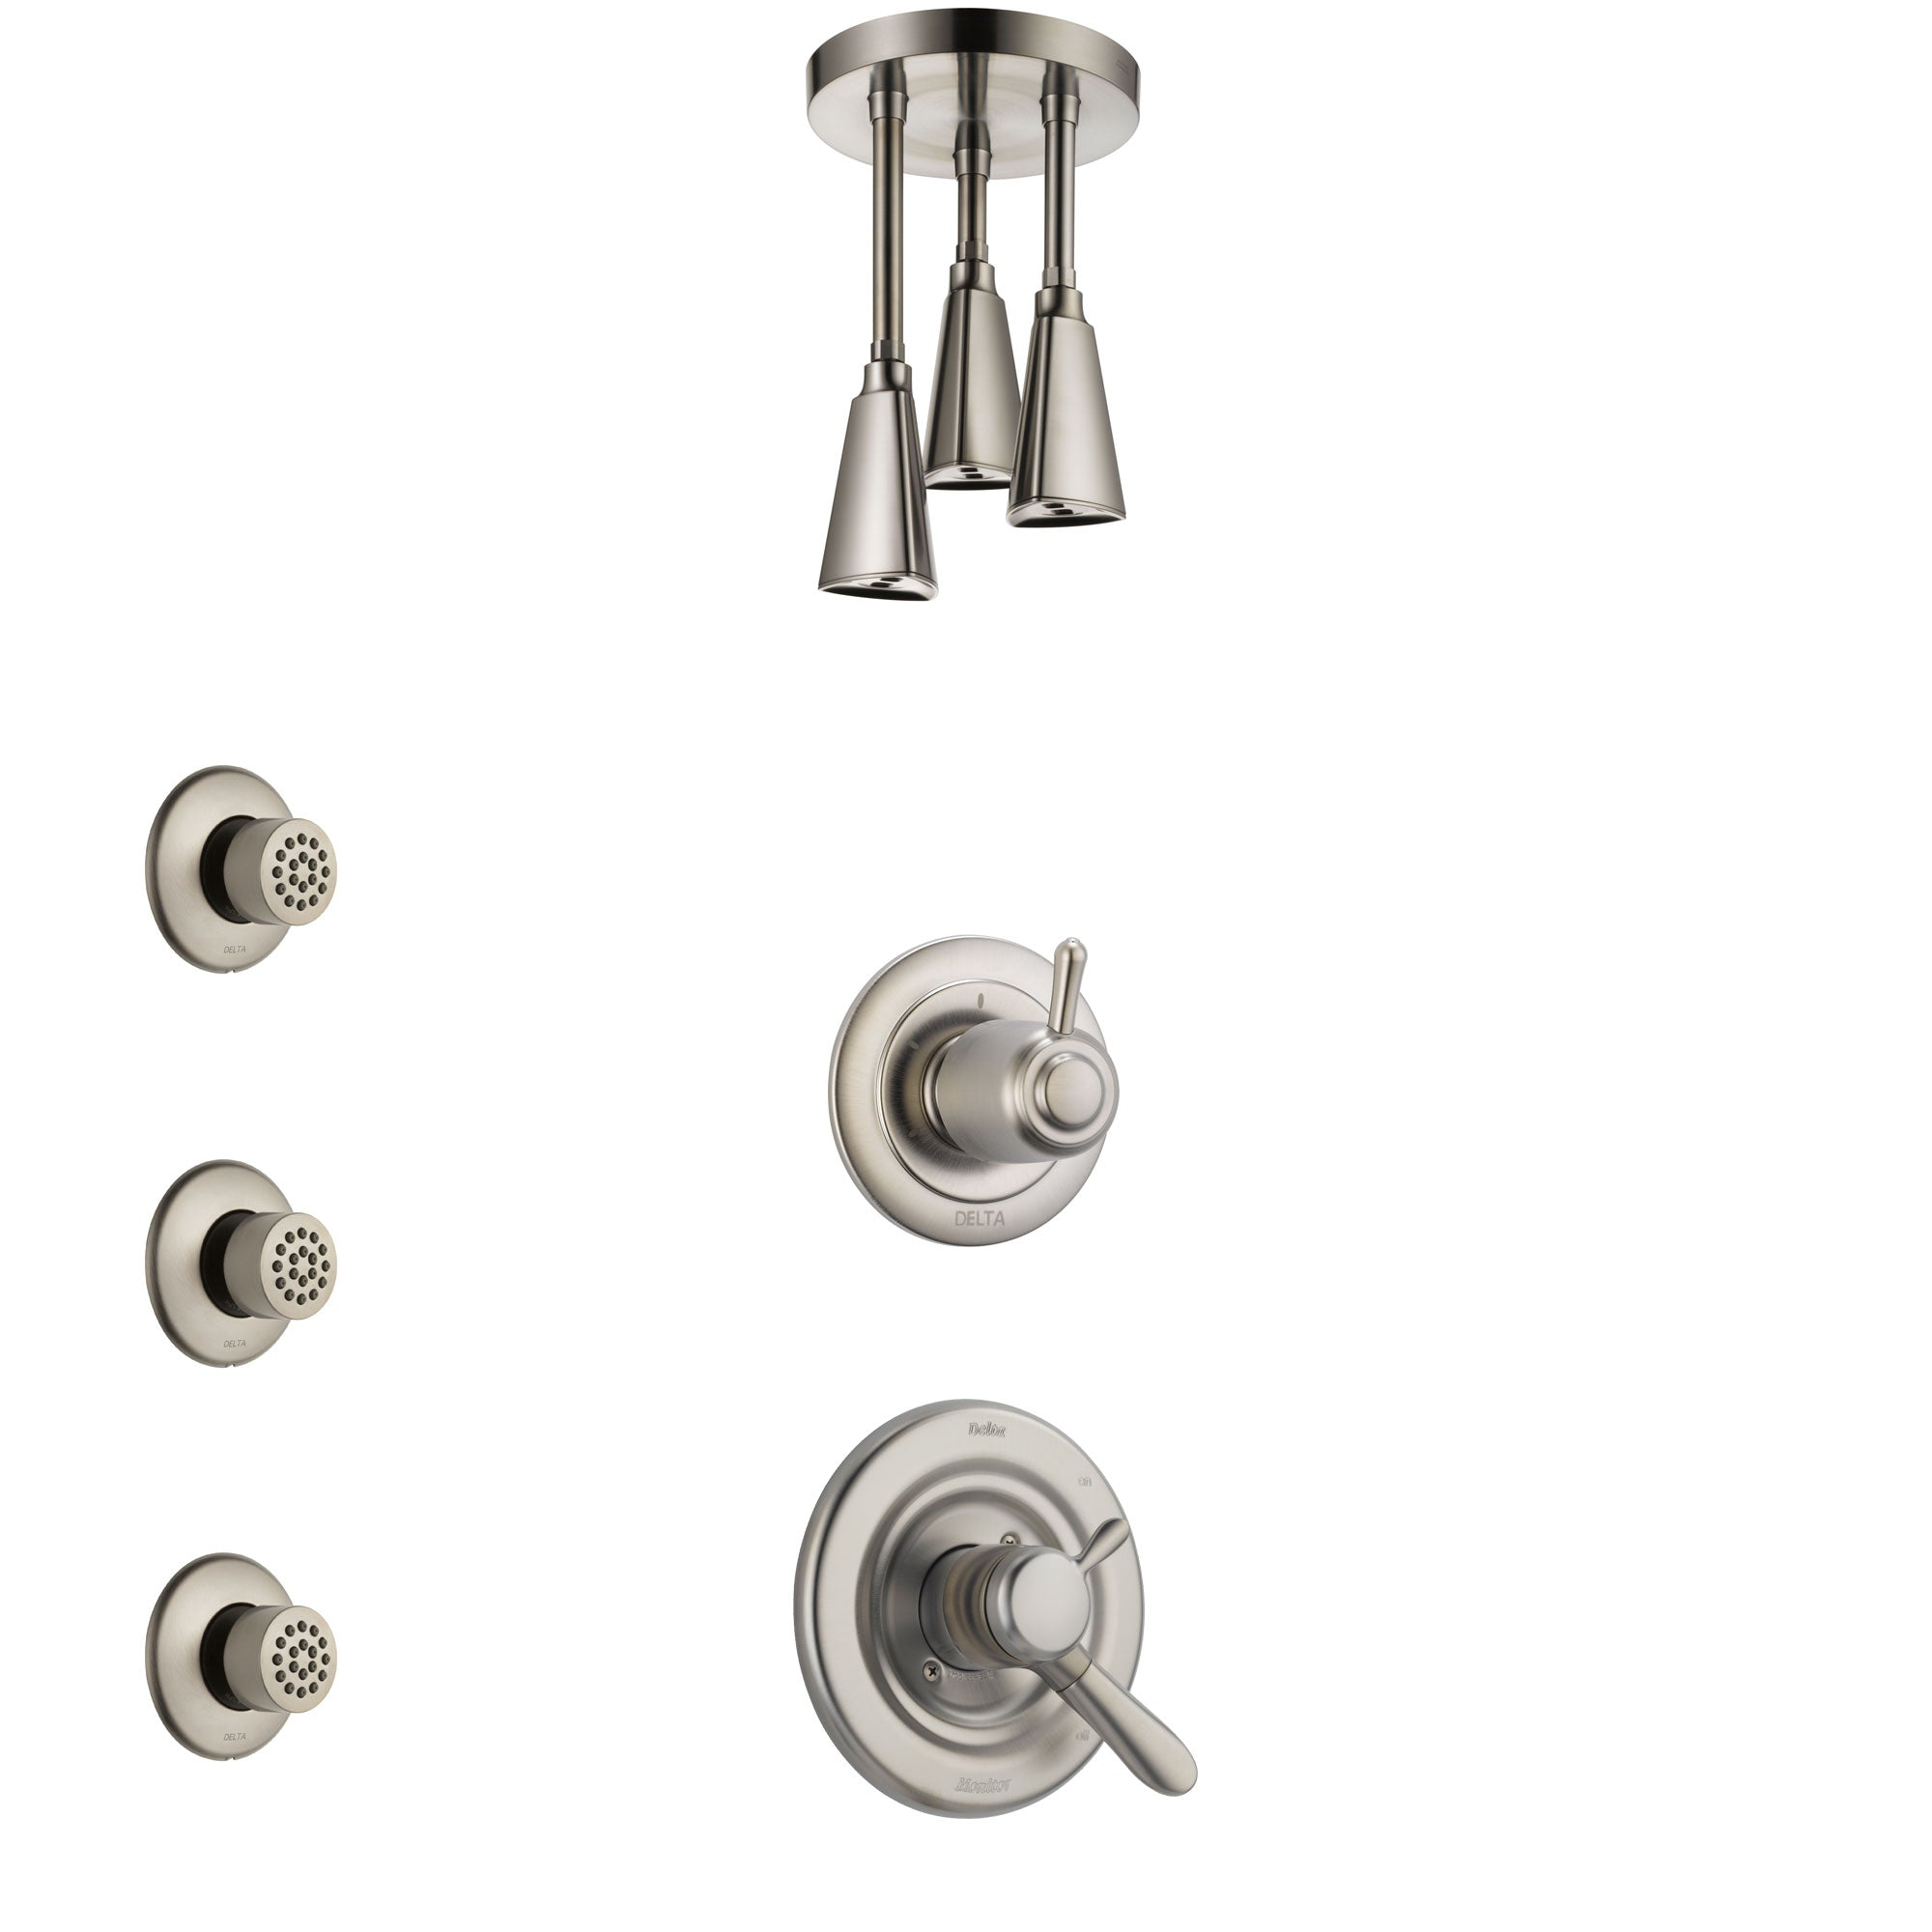 Delta Lahara Stainless Steel Finish Shower System with Dual Control Handle, 3-Setting Diverter, Ceiling Mount Showerhead, and 3 Body Sprays SS1738SS8